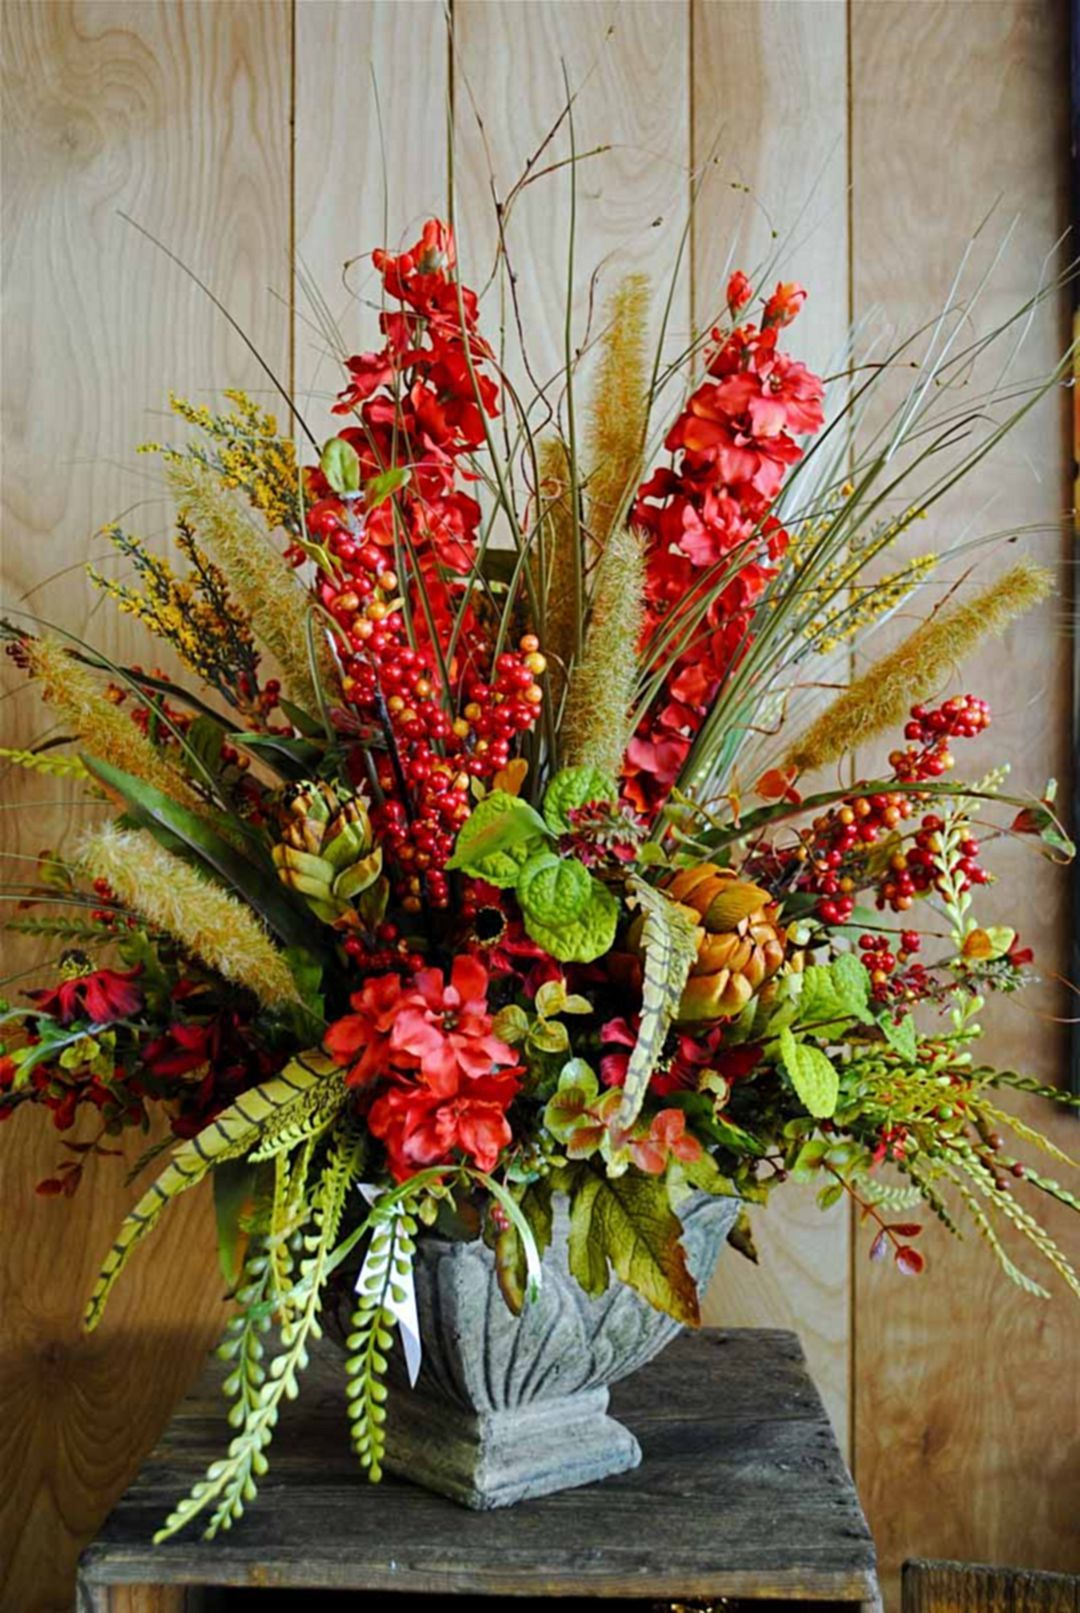 Beautiful fall flower arrangements ideas 8678 fall flower beautiful fall flower arrangements ideas 8678 izmirmasajfo Image collections